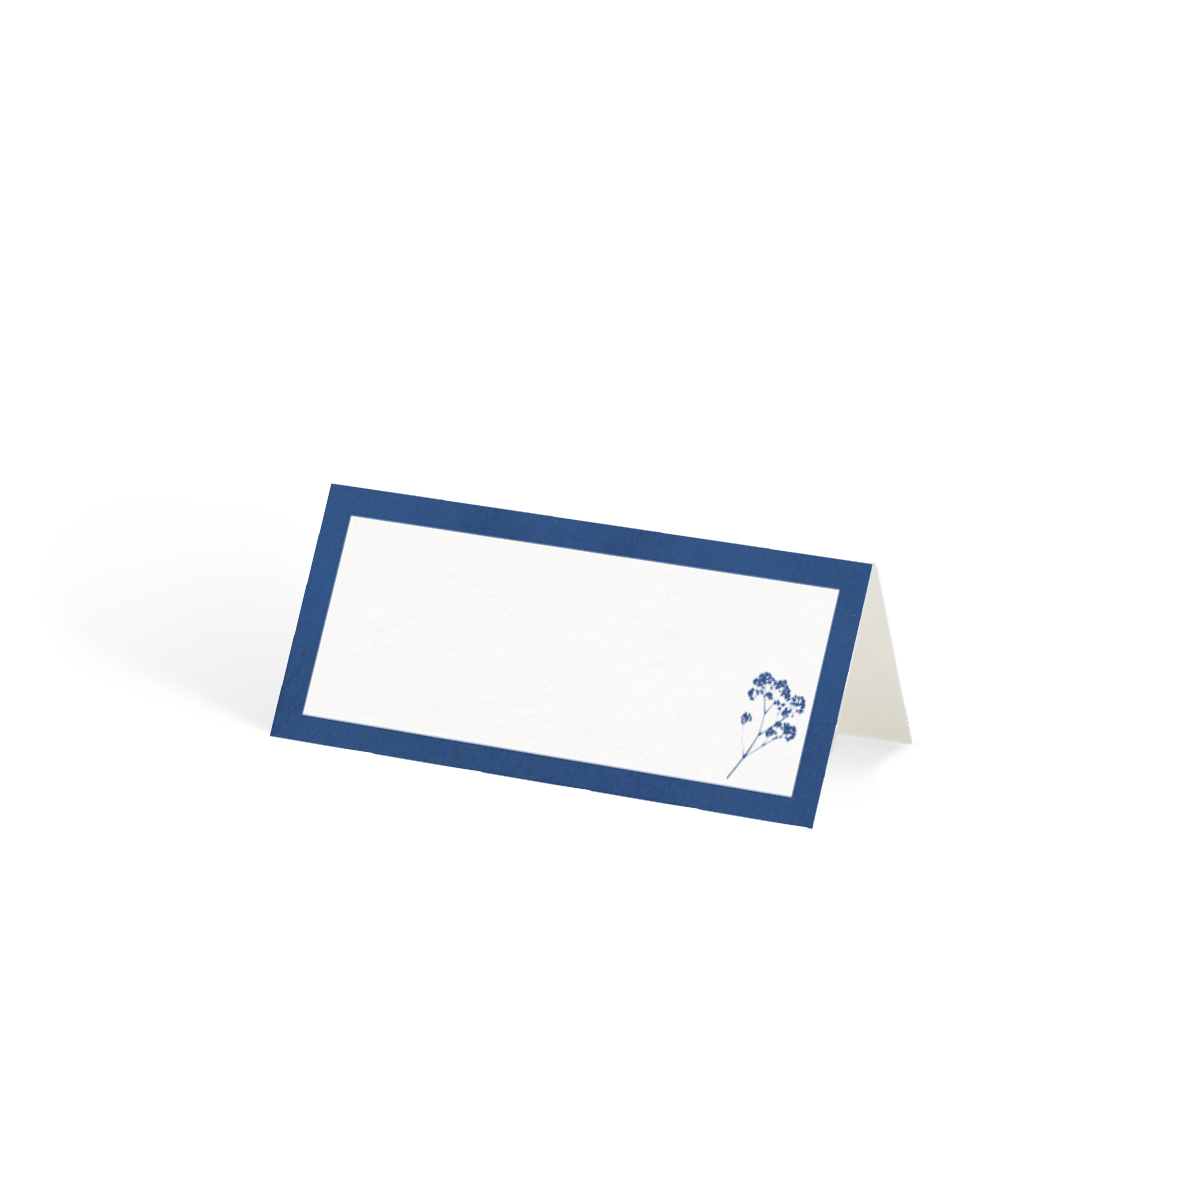 Https%3a%2f%2fwww.papier.com%2fproduct image%2f81027%2f8%2fcyanotype 19352 front 1561546826.png?ixlib=rb 1.1